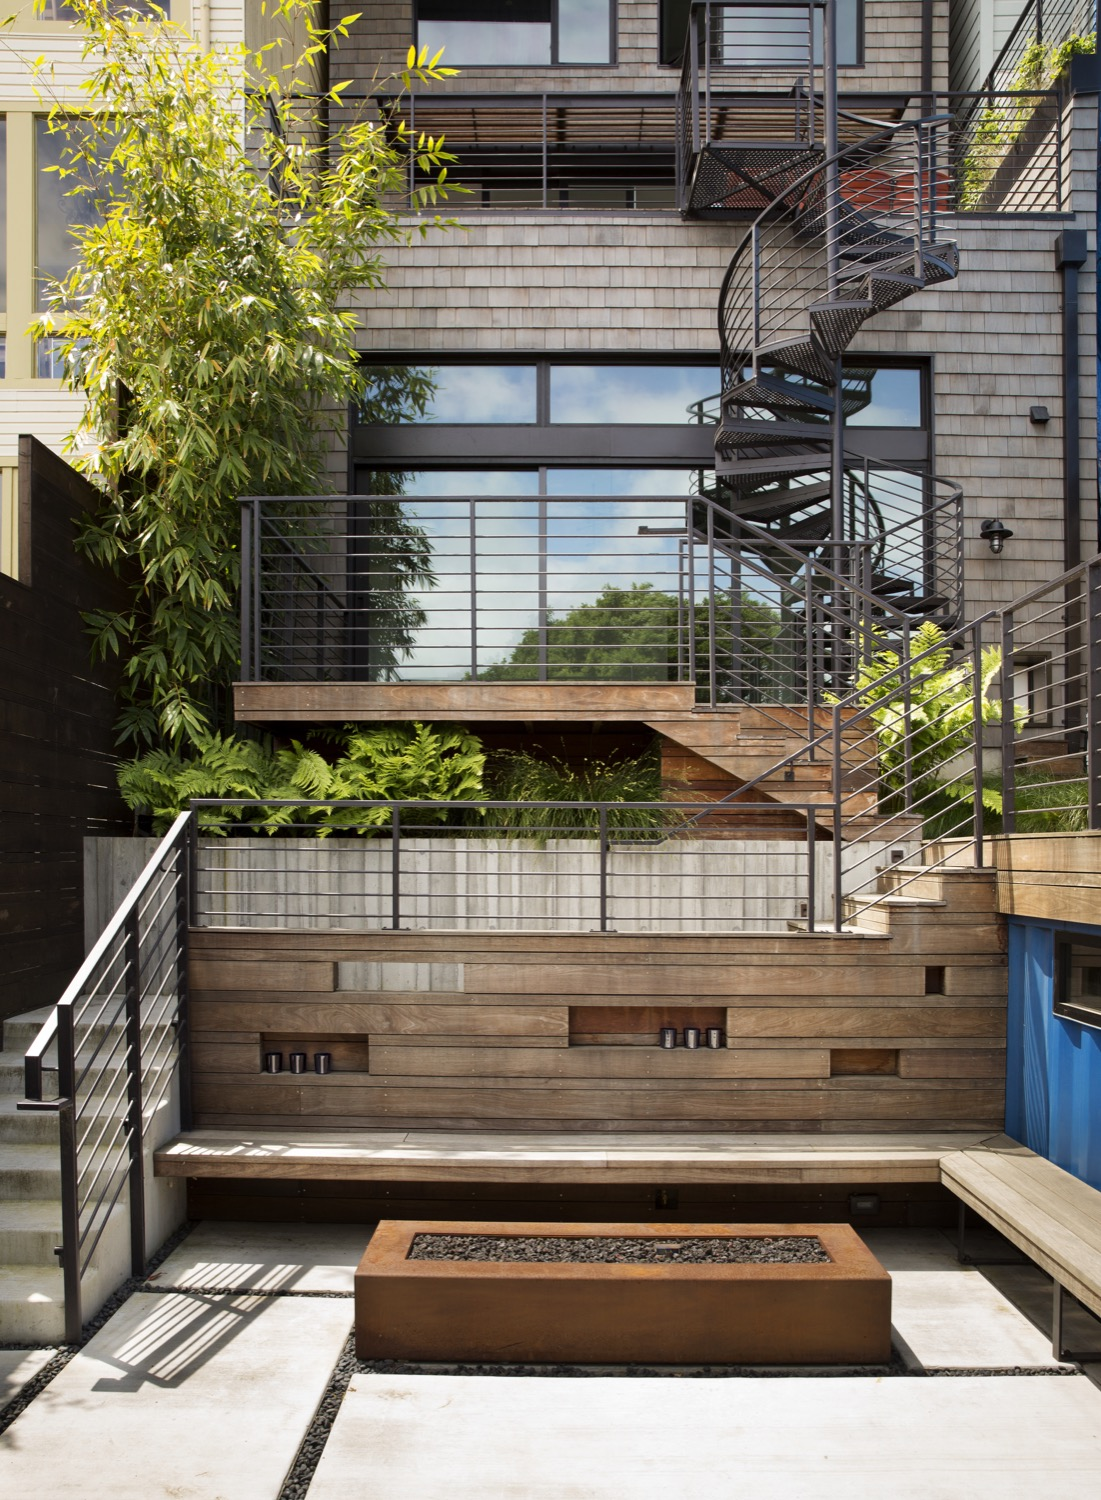 Decks connect on four levels of the building to provide an easy way for the family to access their backyard from a tall, narrow home.